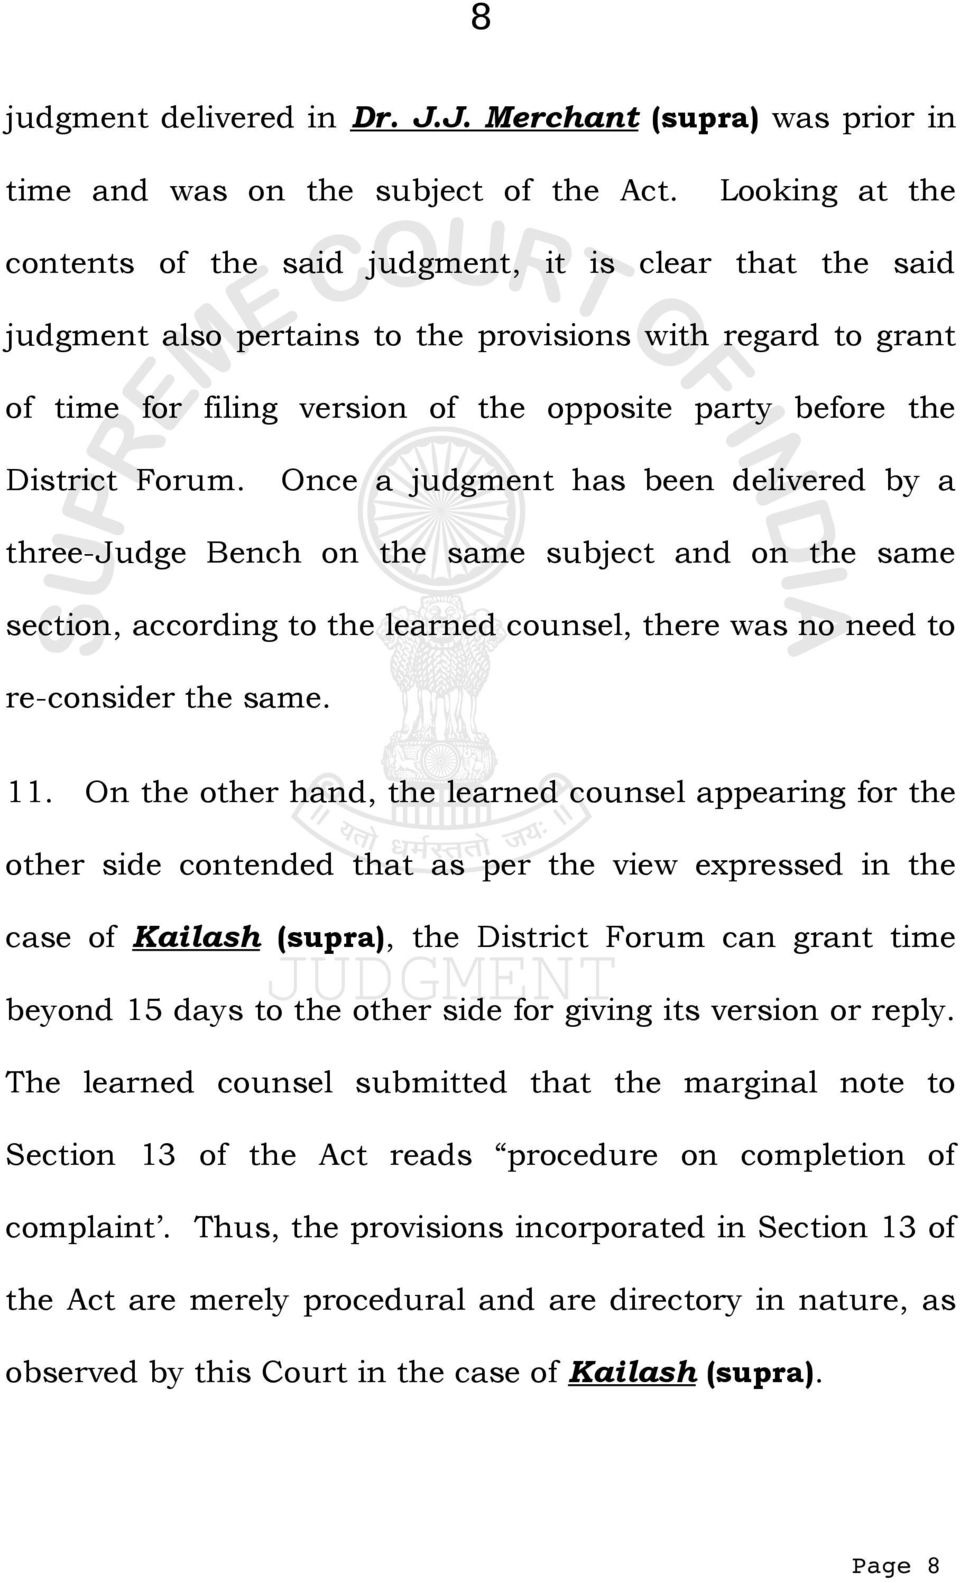 District Forum. Once a judgment has been delivered by a three-judge Bench on the same subject and on the same section, according to the learned counsel, there was no need to re-consider the same. 11.